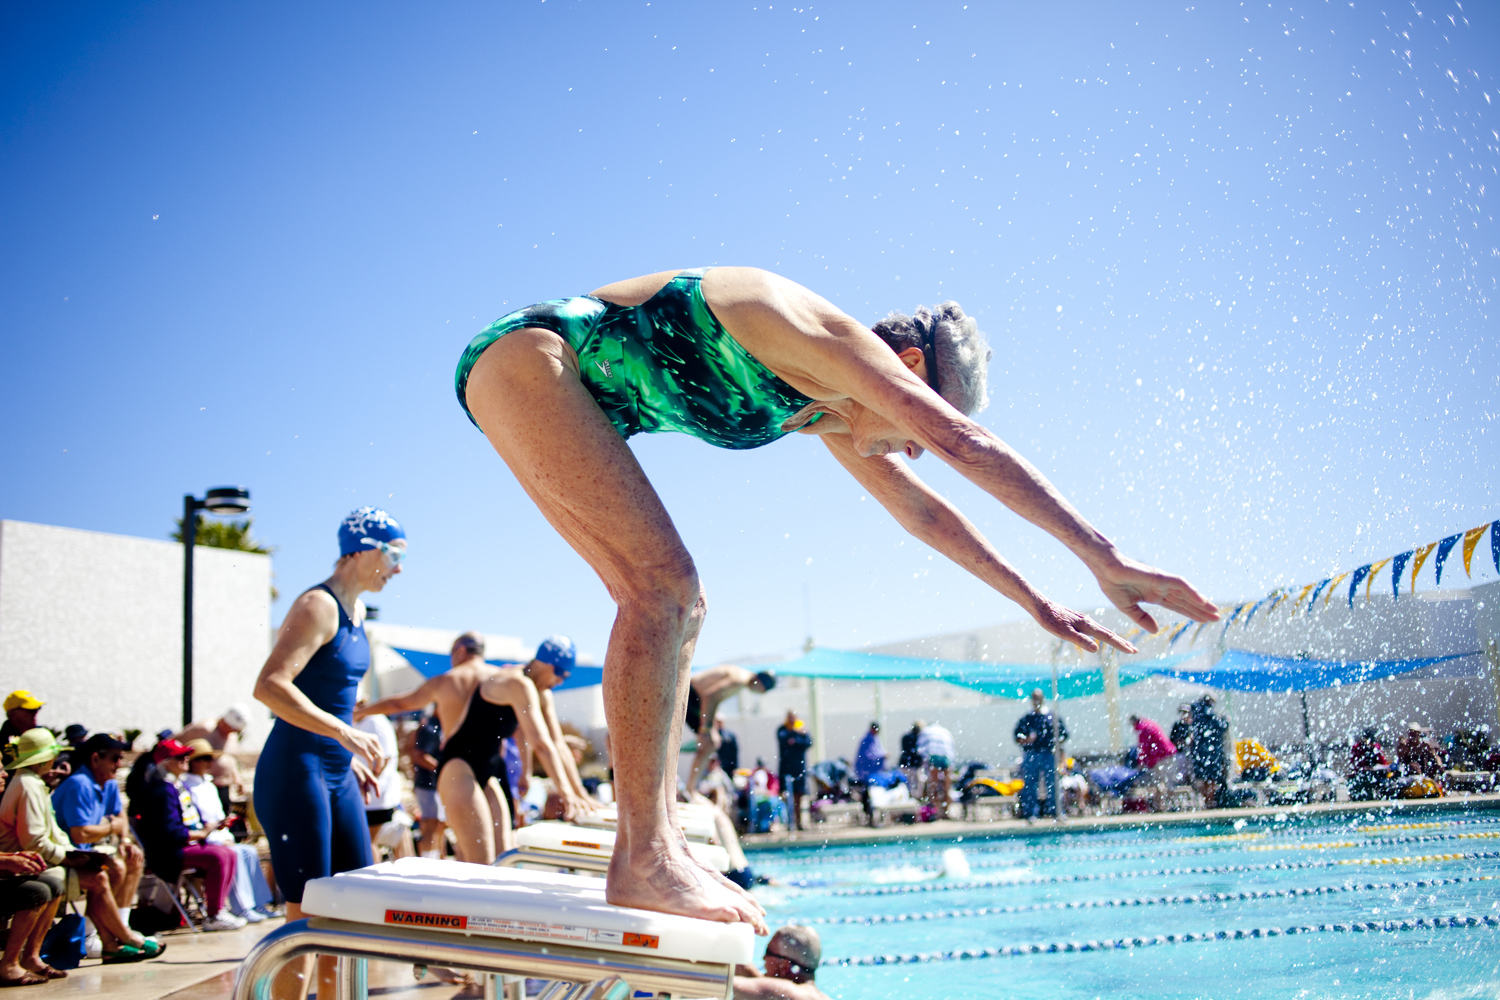 Swim Relays for the Arizona Senior Olympics take place at the Bell Recreation Center pool in Sun City, Arizona March 14, 2010.